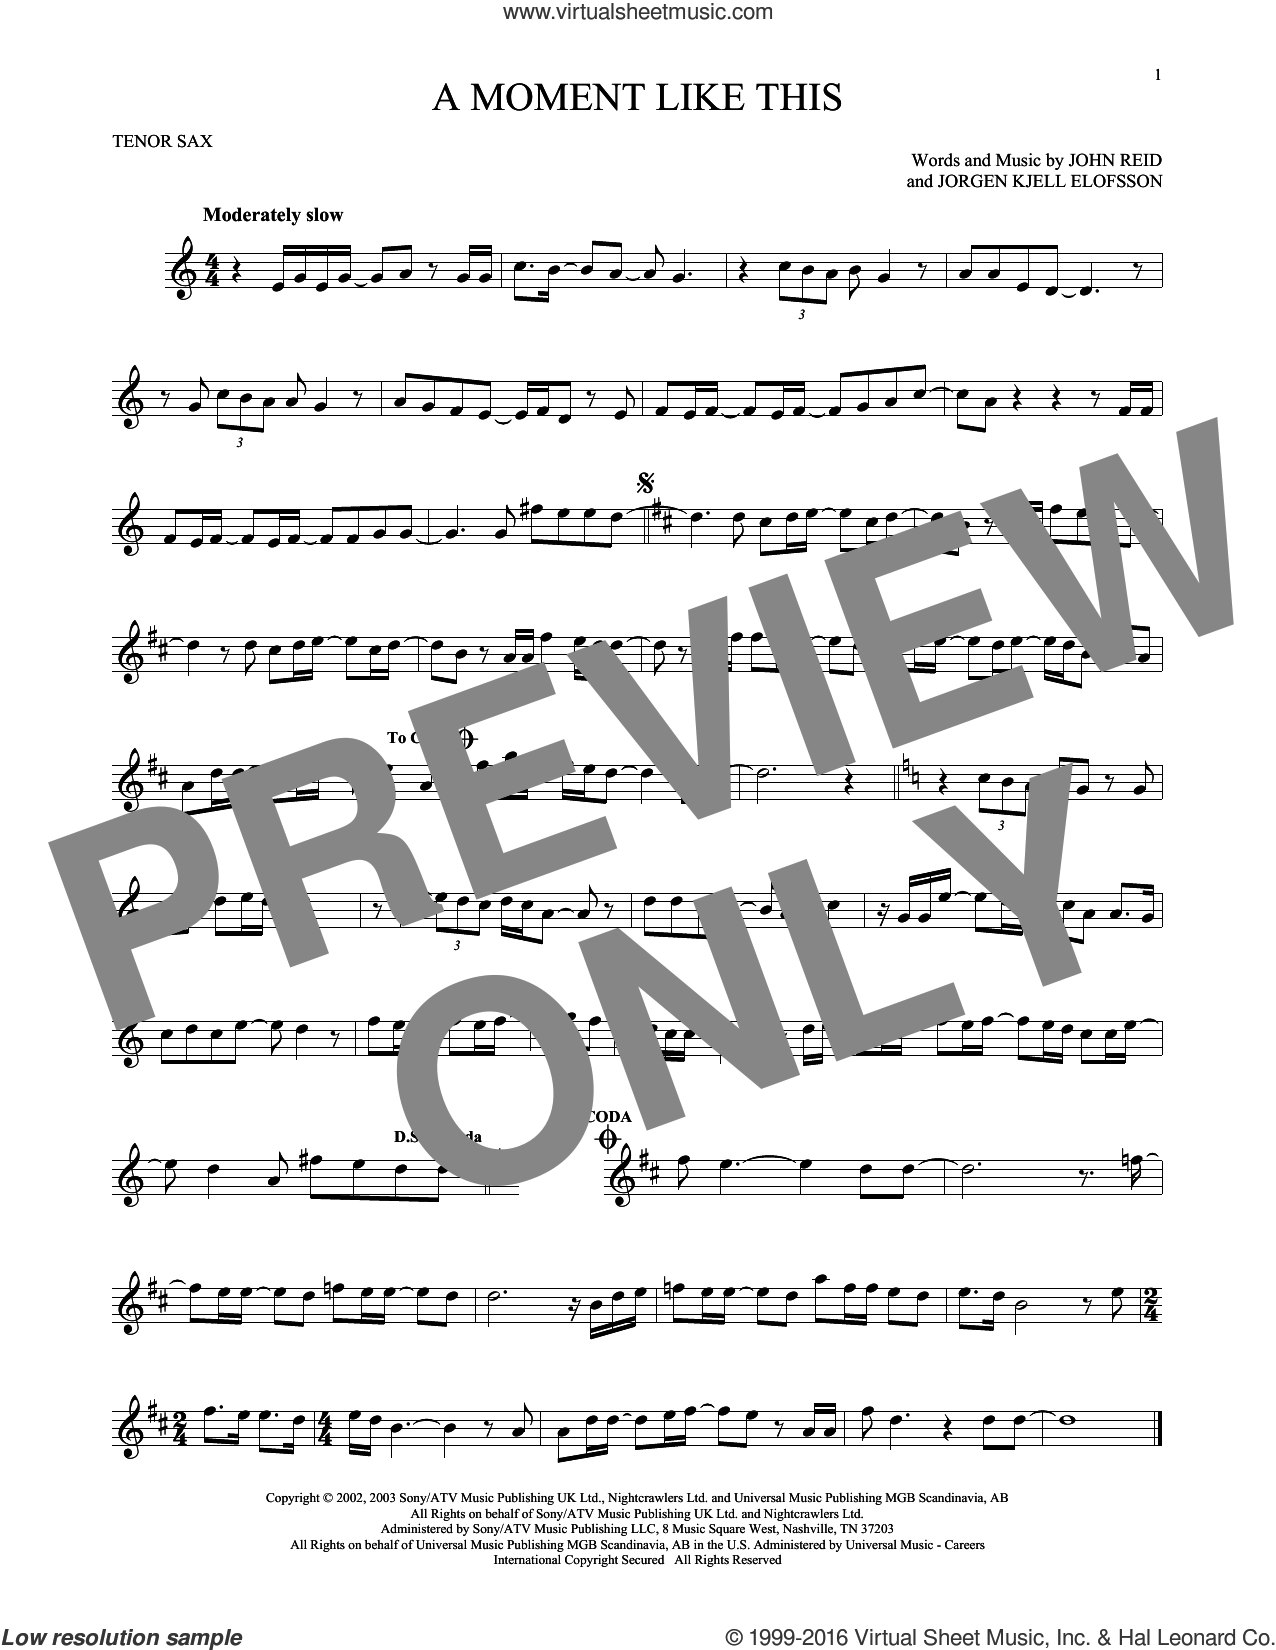 A Moment Like This sheet music for tenor saxophone solo by Kelly Clarkson, John Reid and Jorgen Elofsson, intermediate skill level